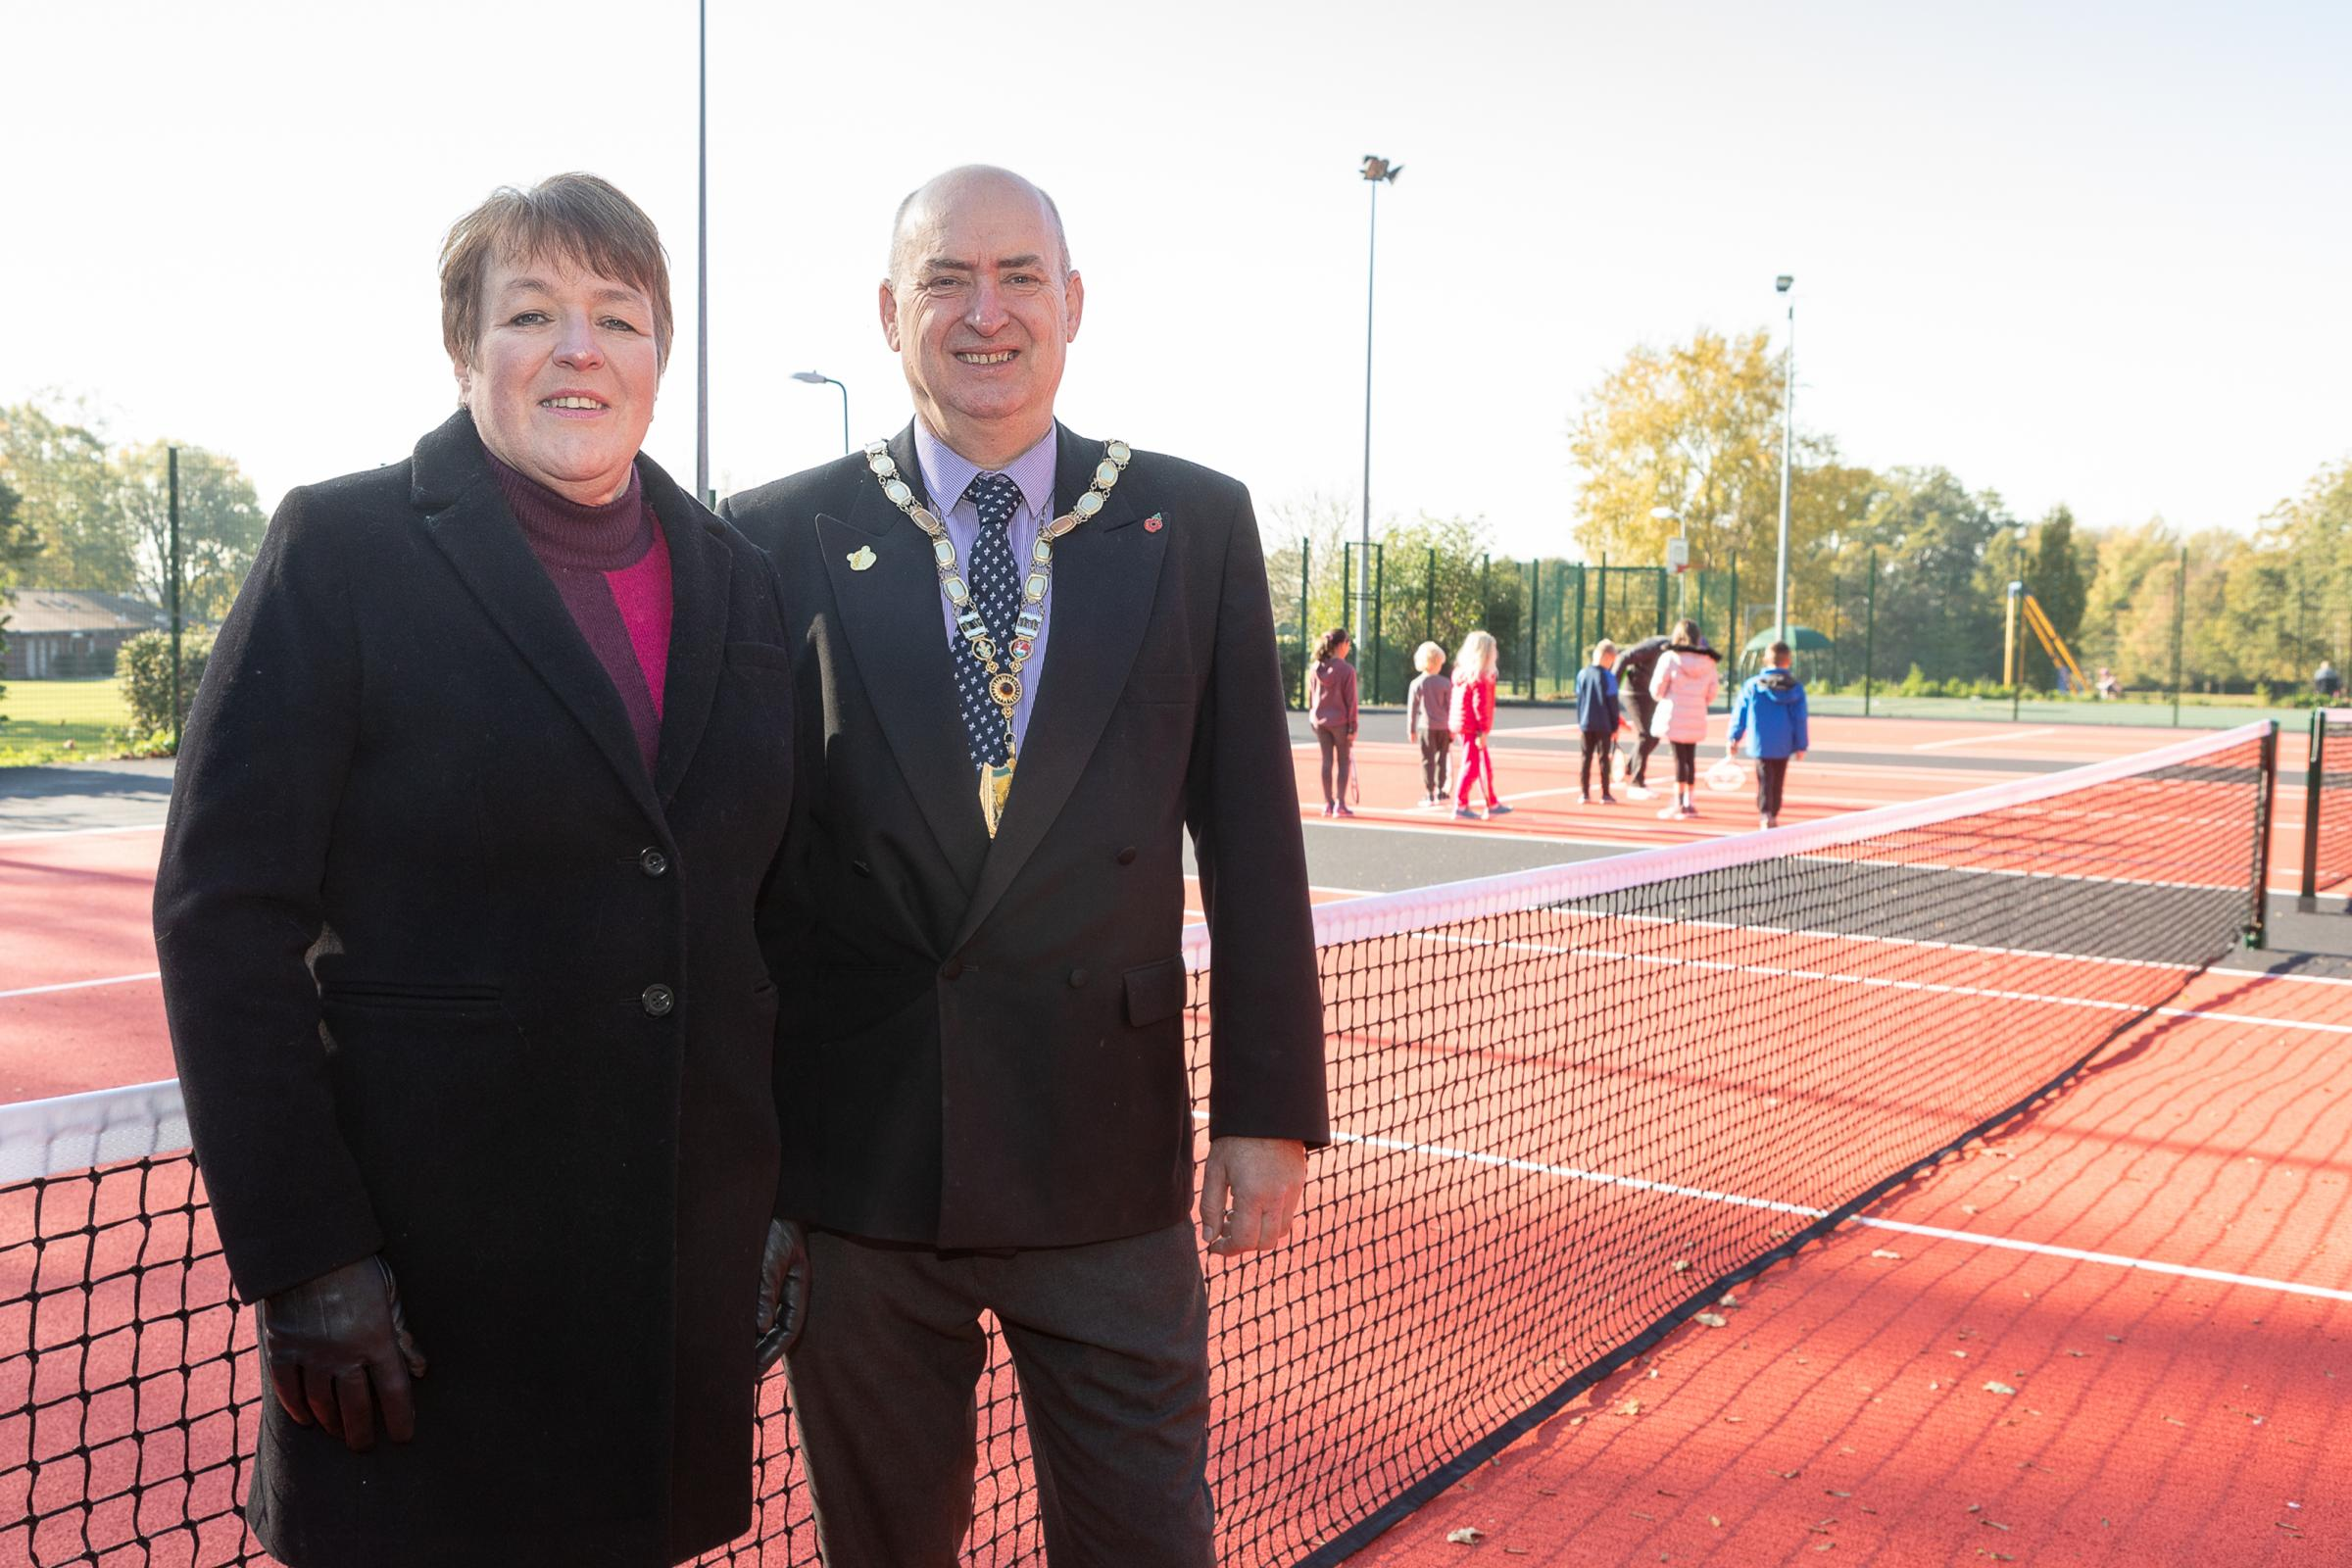 Leader of TRDC Cllr Sara Bedford pictured with chairman of TRDC Cllr Phill Williams at the new courts